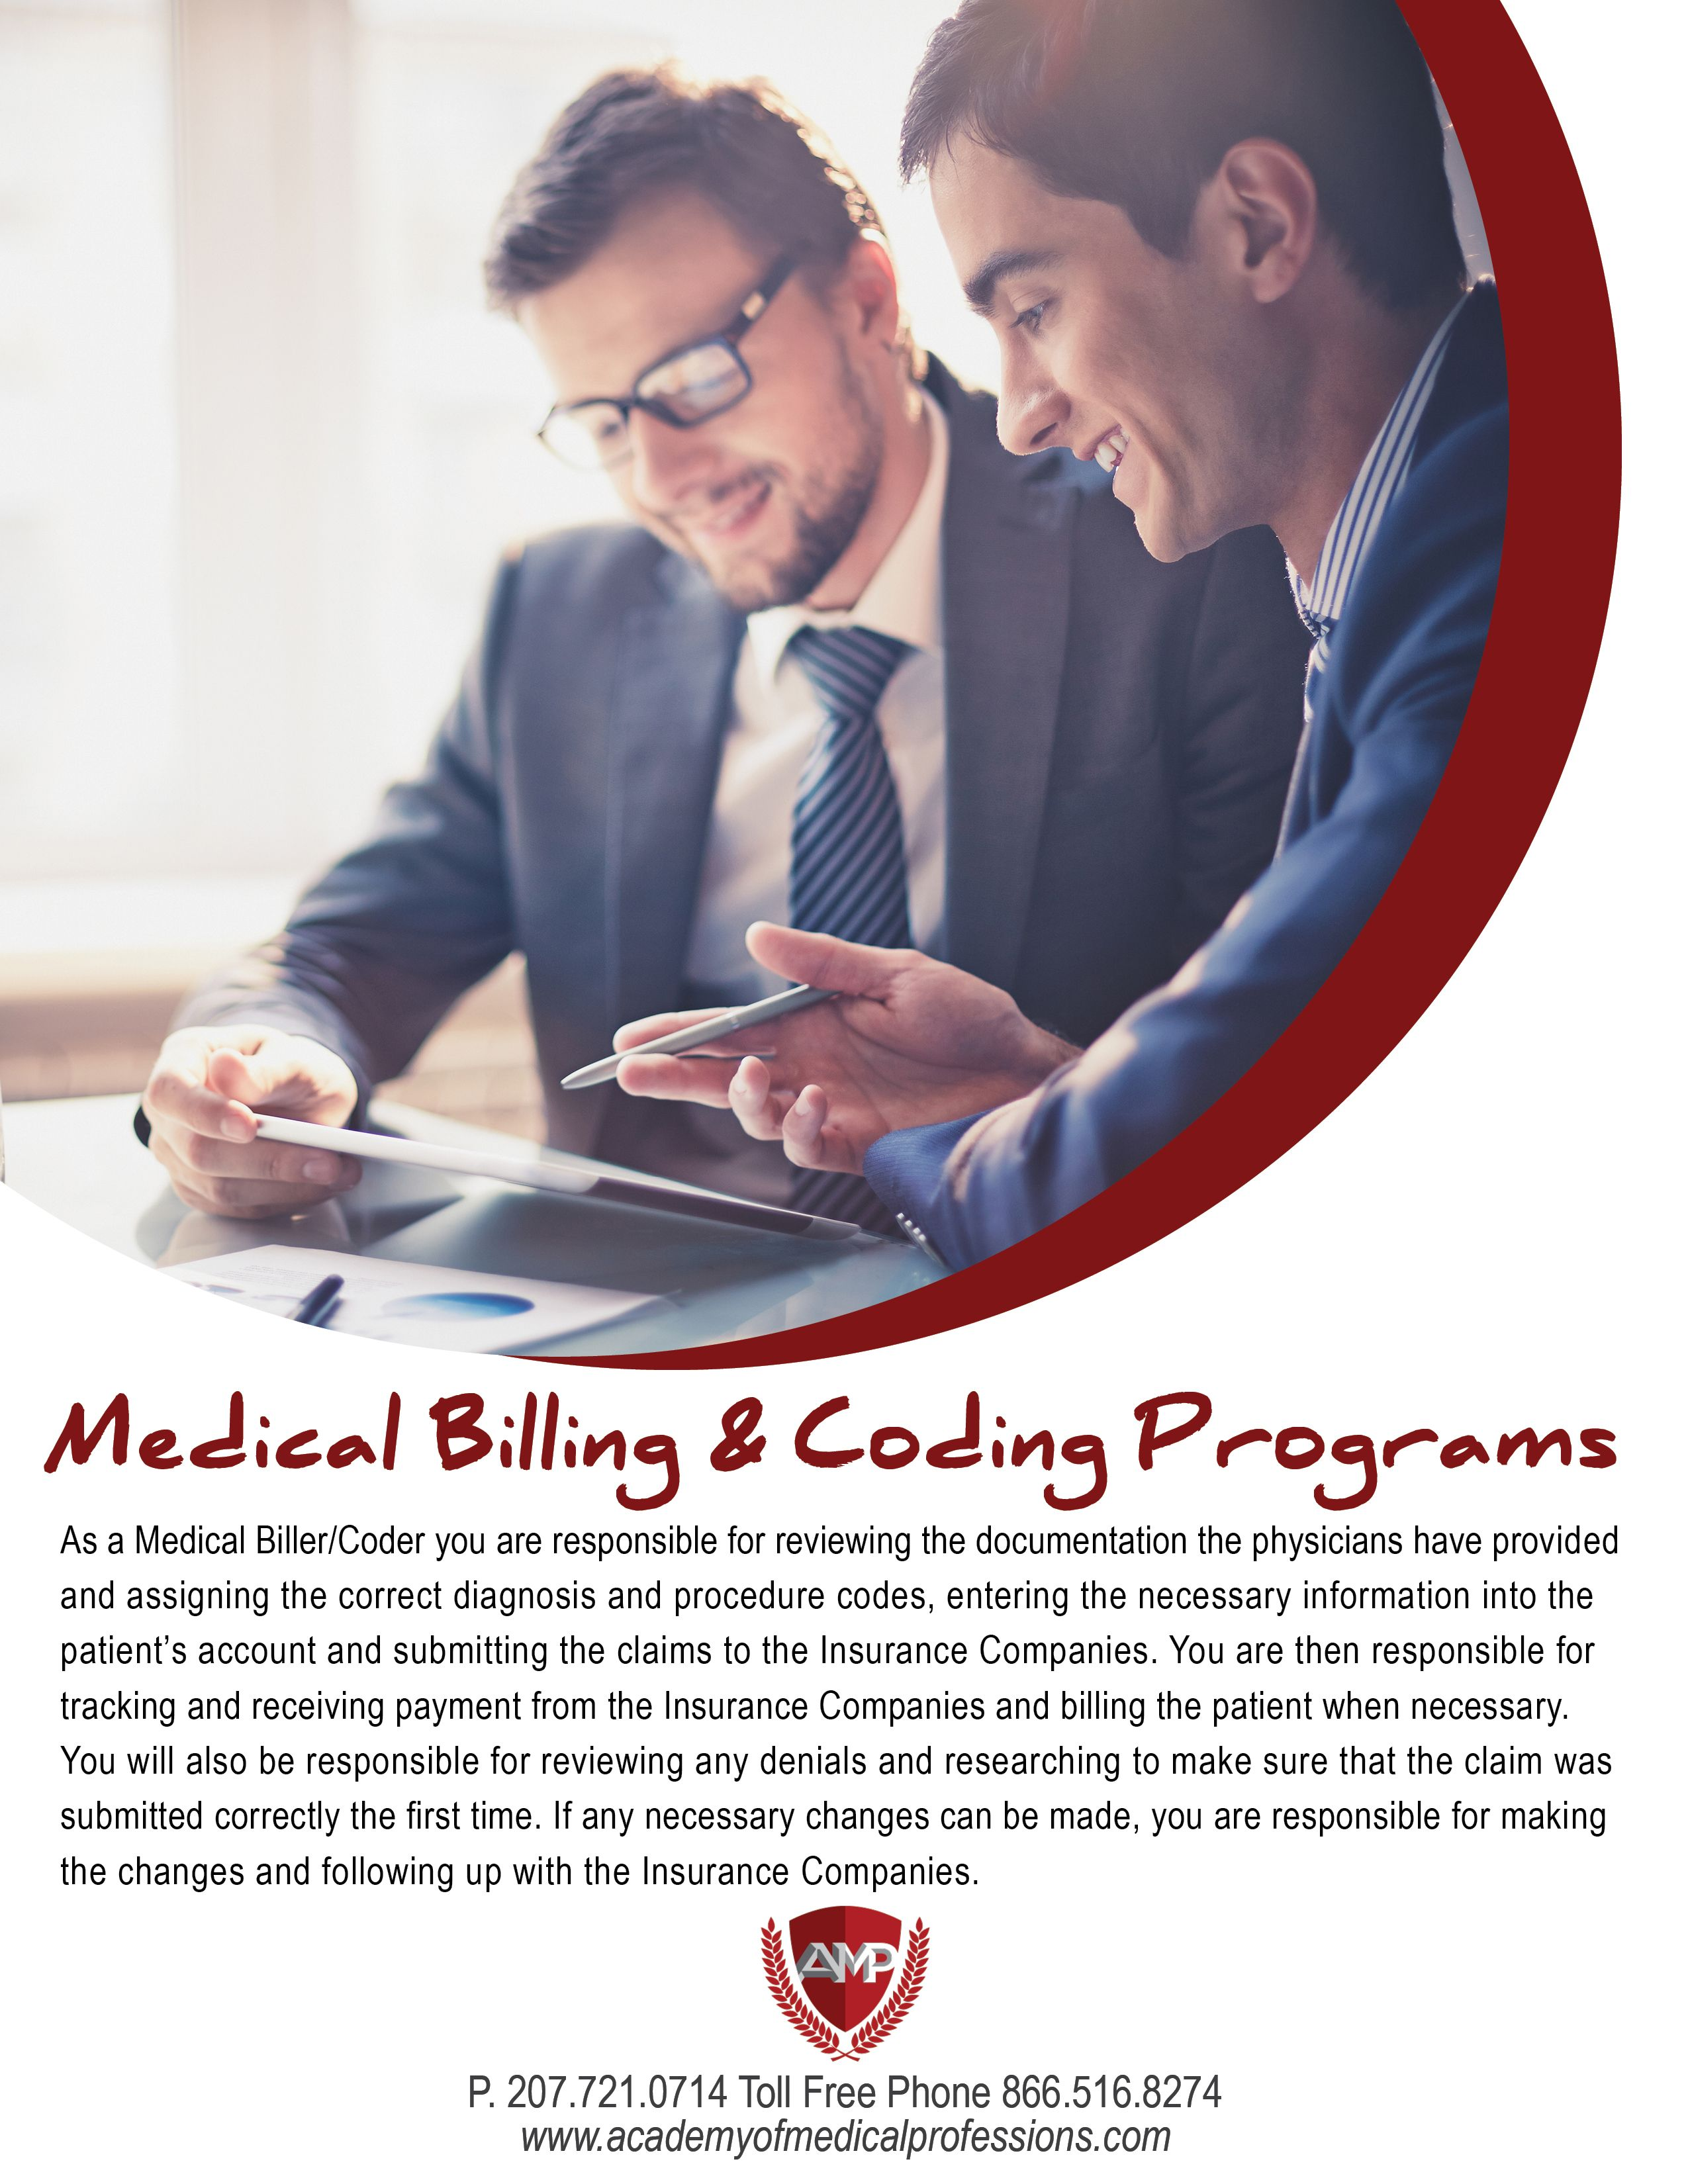 Looking for the perfect job? Medical Billing & Coding are